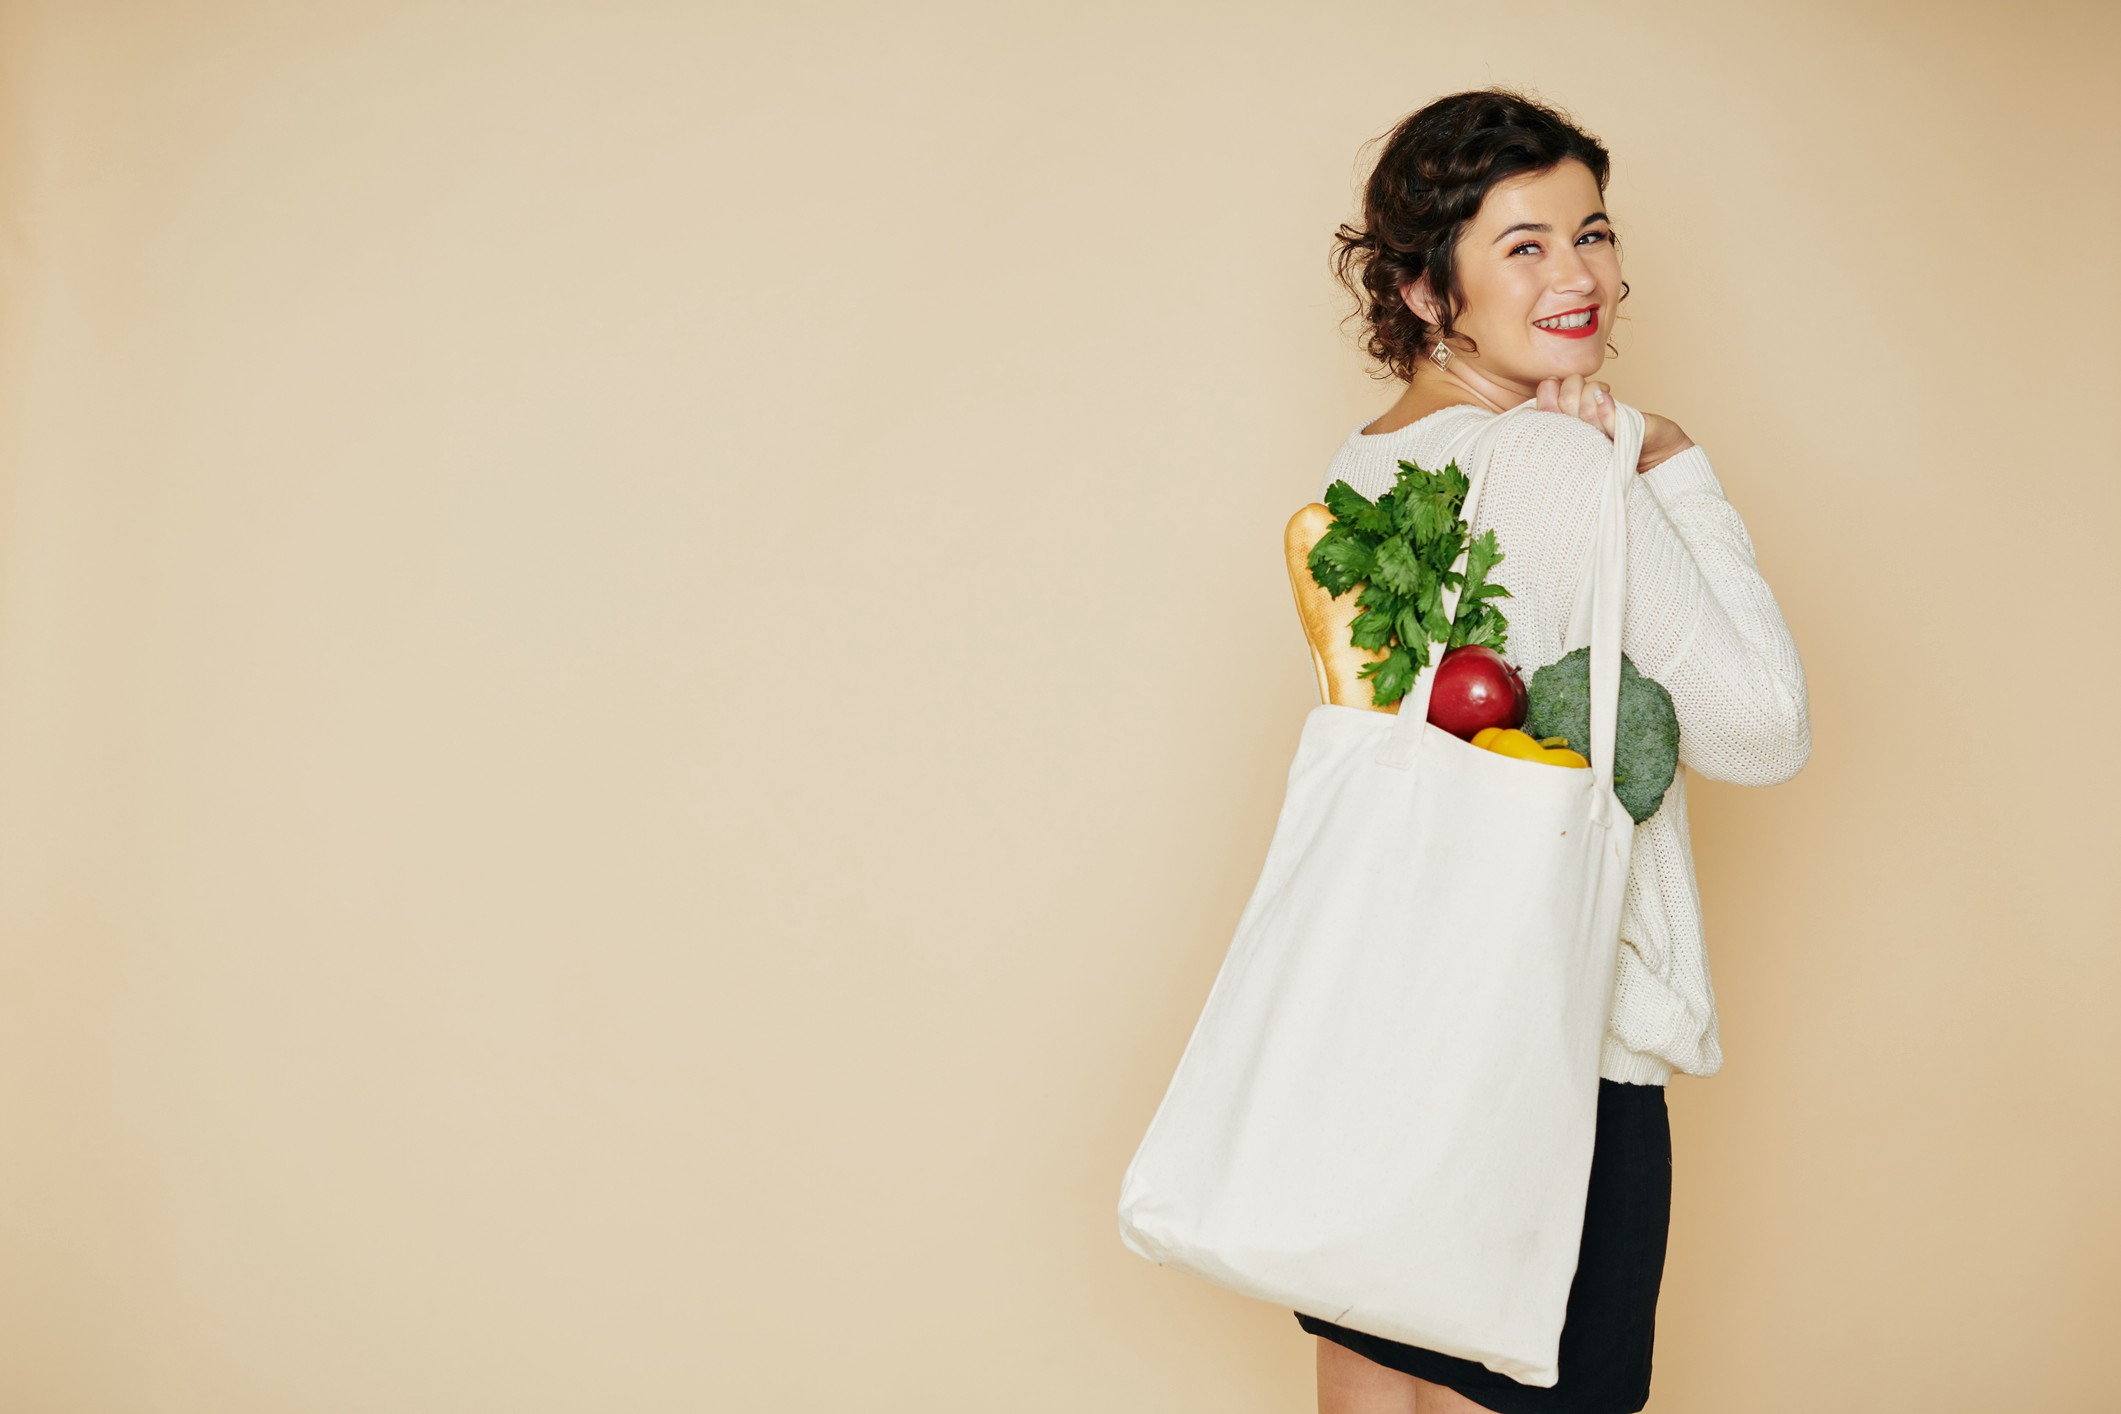 A woman with a shopping bag filled with healthy food slung over her shoulder.